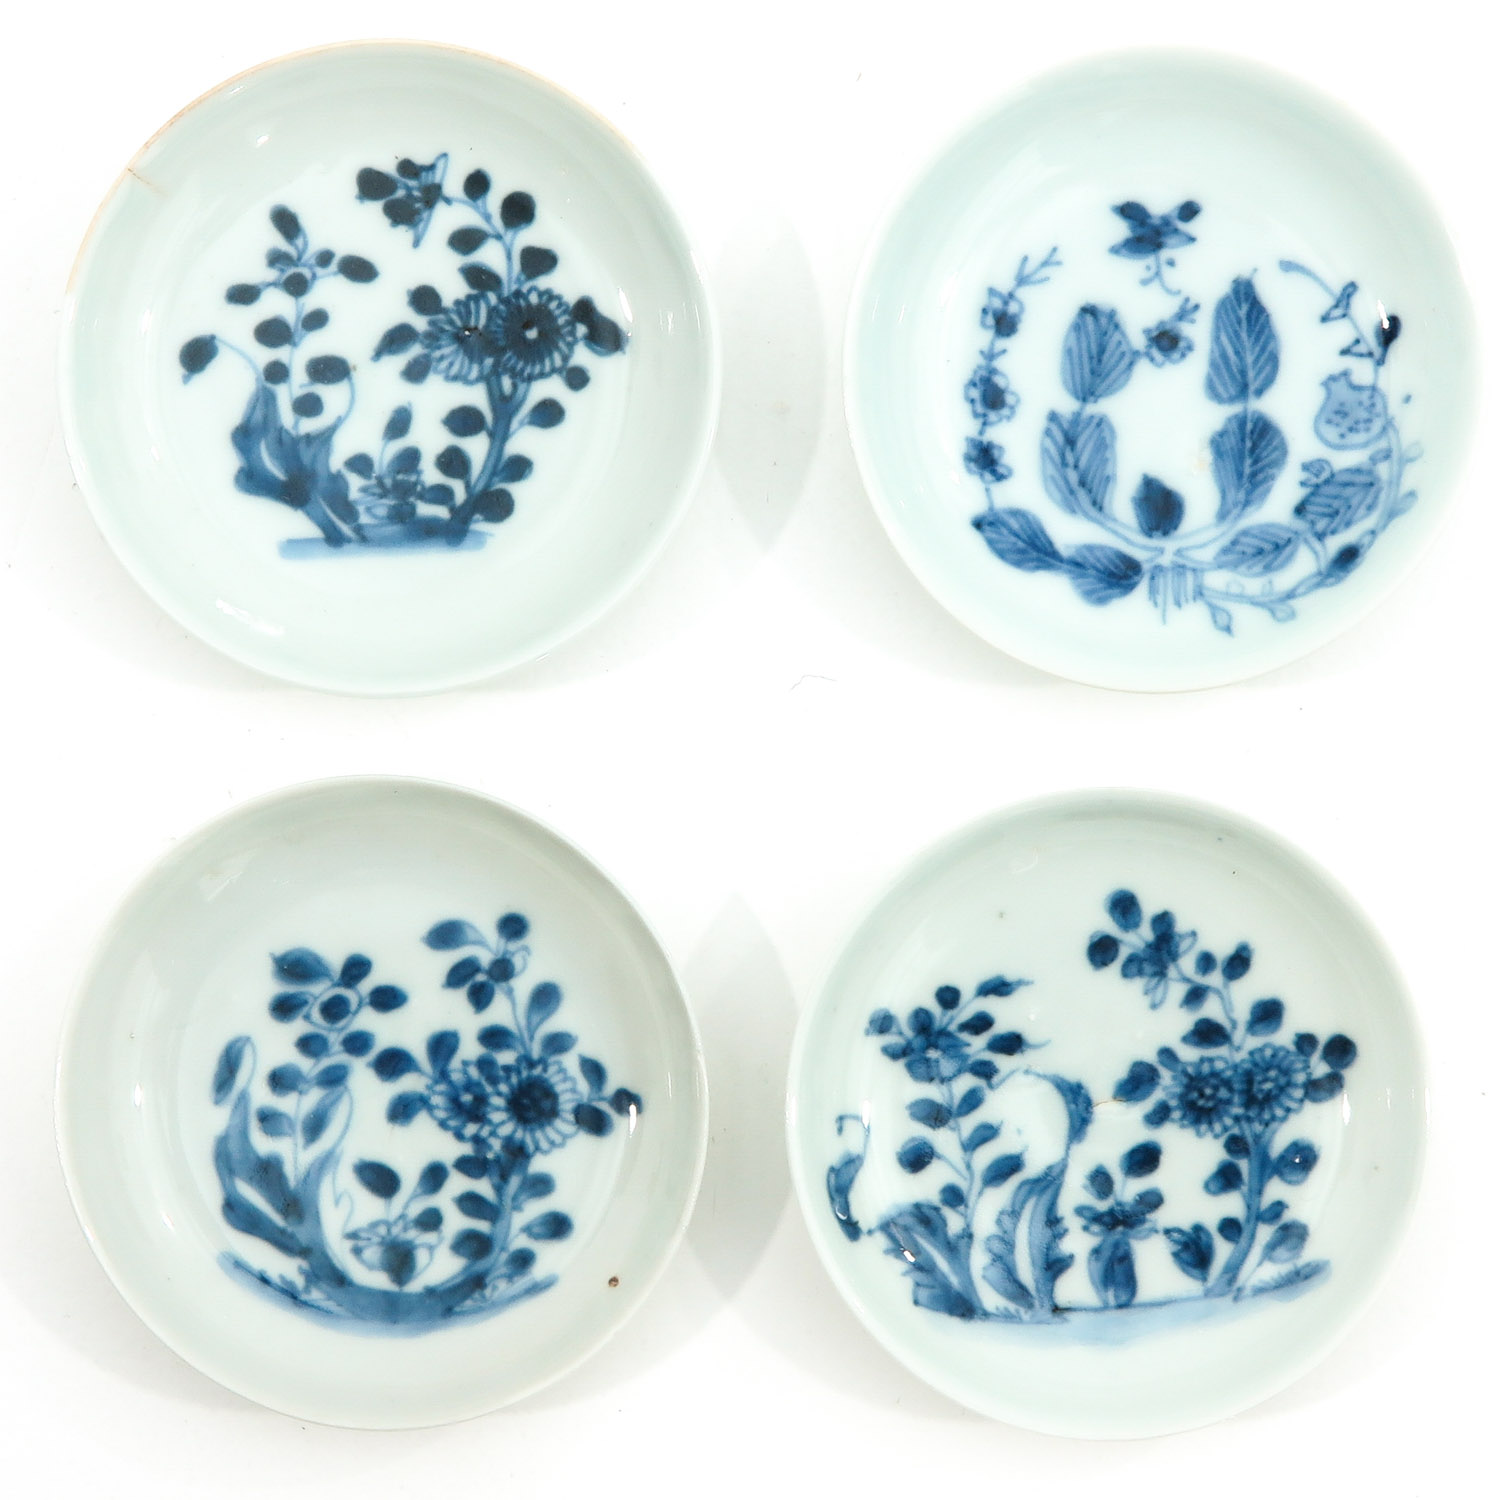 A Collection of 11 Small Plates - Image 3 of 10